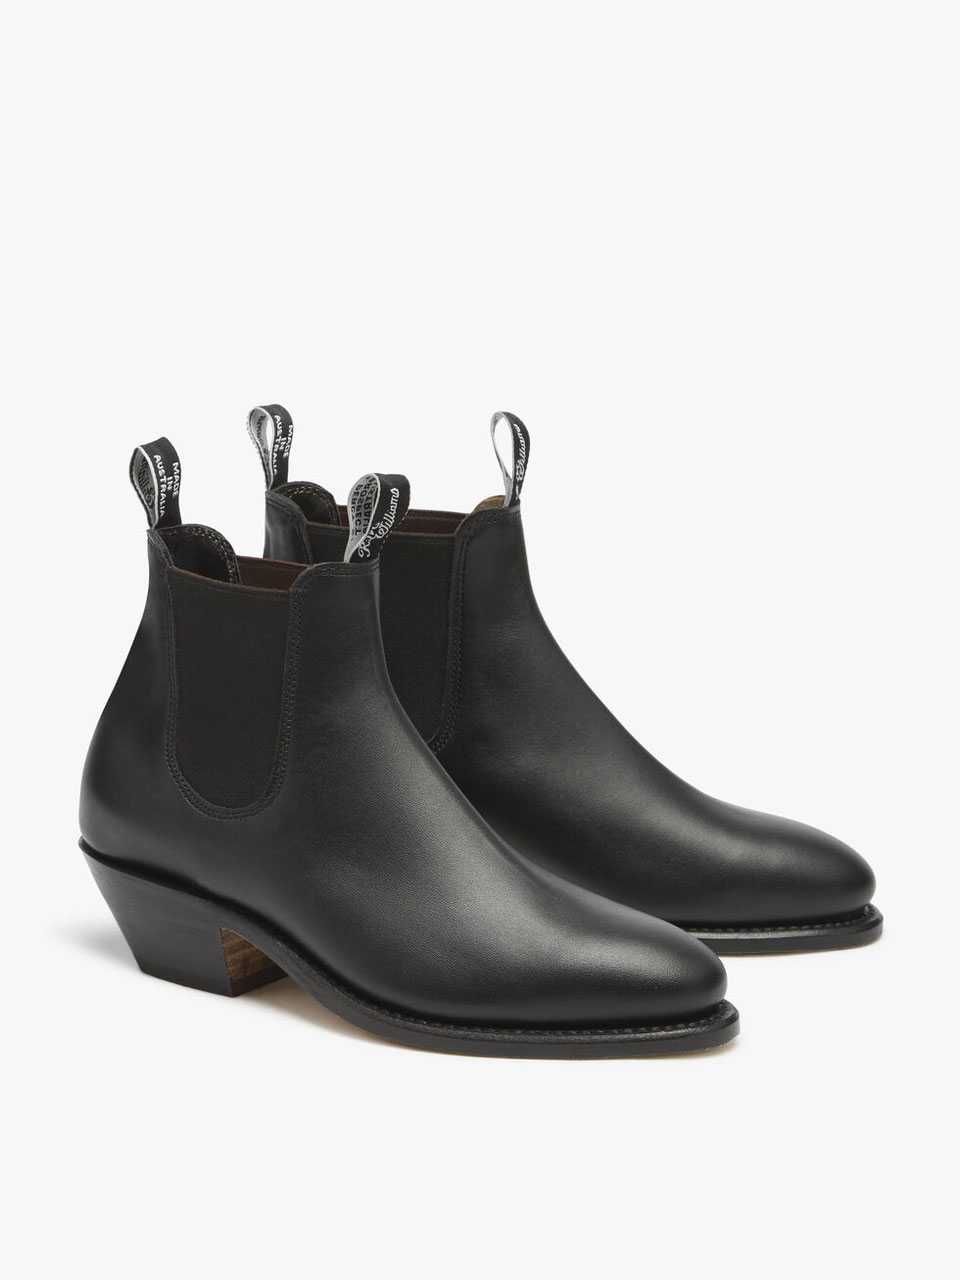 Adelaide Cuban Heel Boot Yearling leather, leather sole